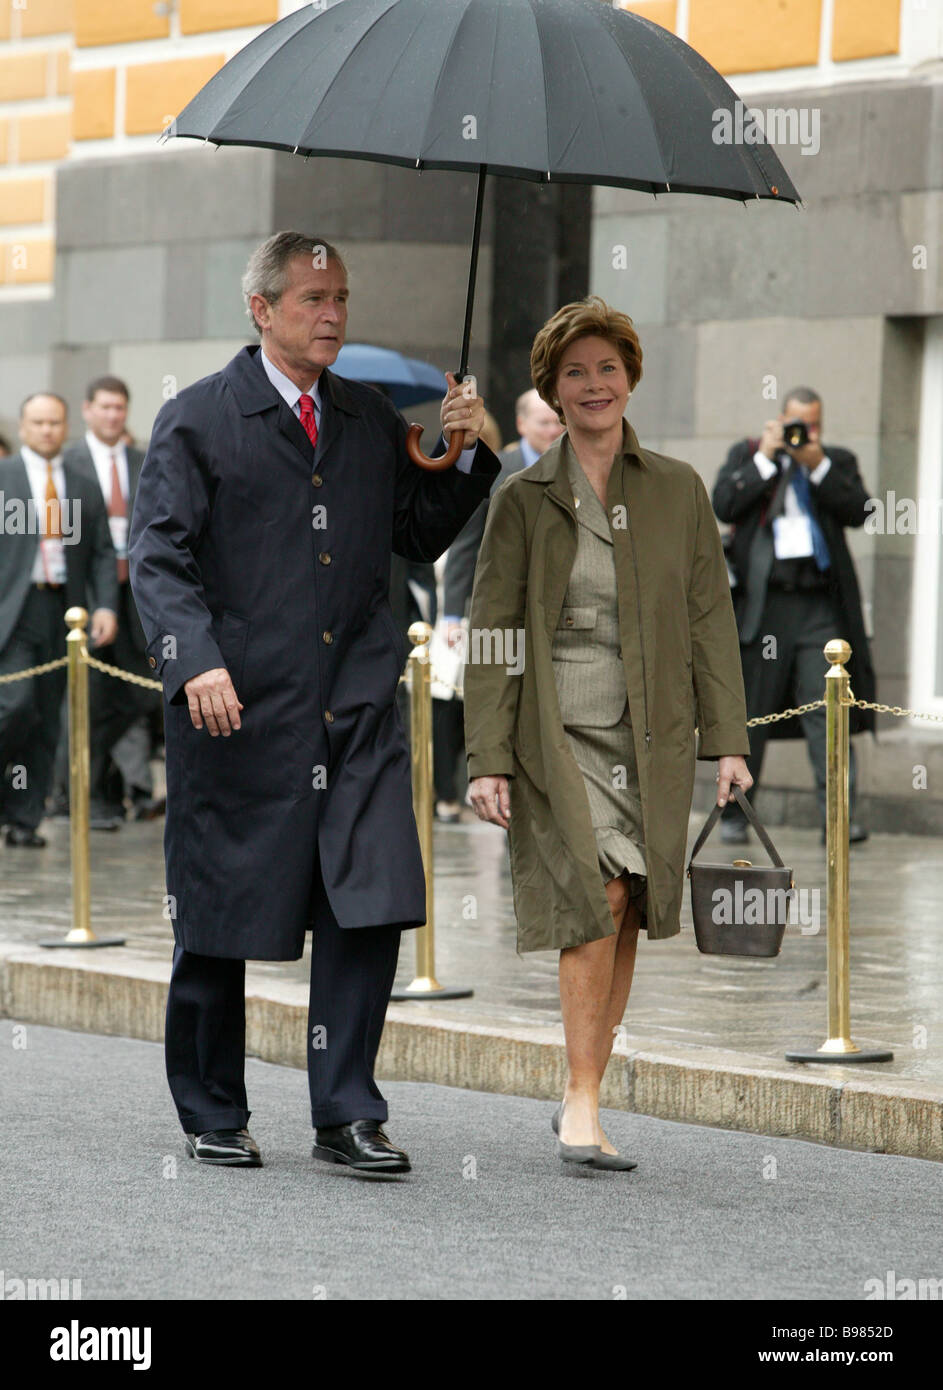 A walk in the rain US President George W Bush and Laura his wife going to Red Square - Stock Image